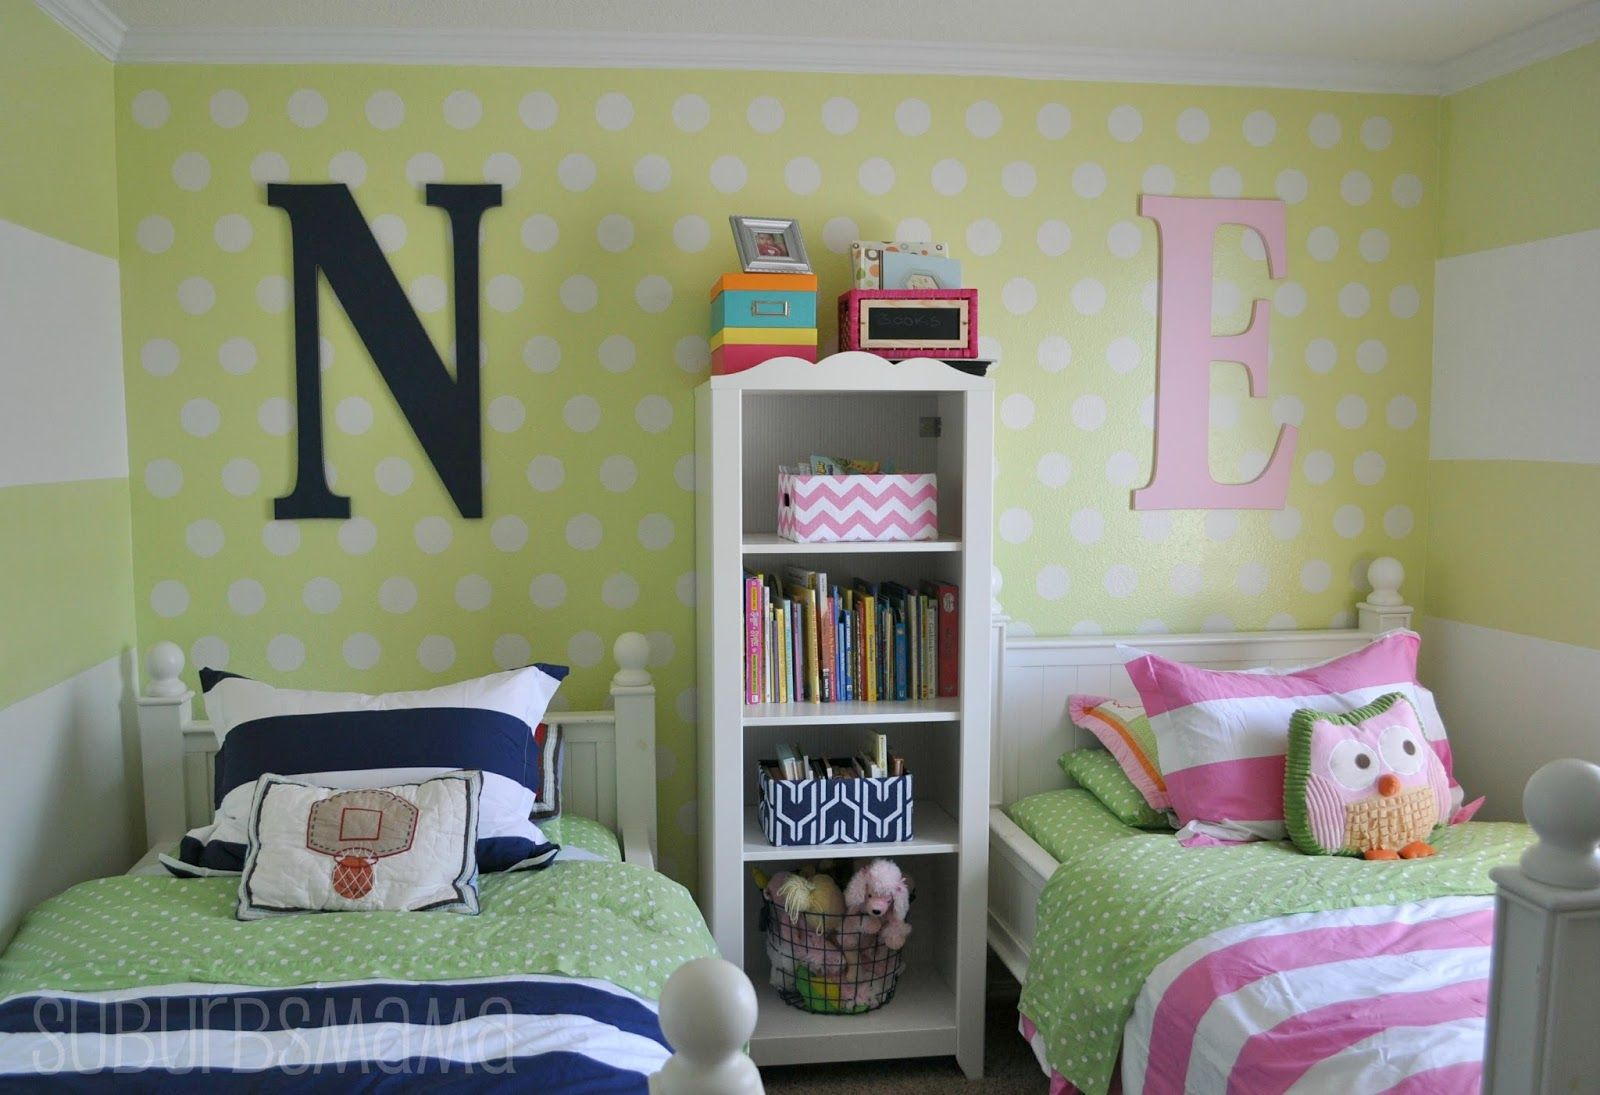 Bedroom designs for girls green - 16 Gorgeous Boy Girl Room Ideas Beautiful Boy And Girl Shared Bedroom With Two Single Size Beds Navy And Pink Stripes Pillows Blankets Plus Basketball